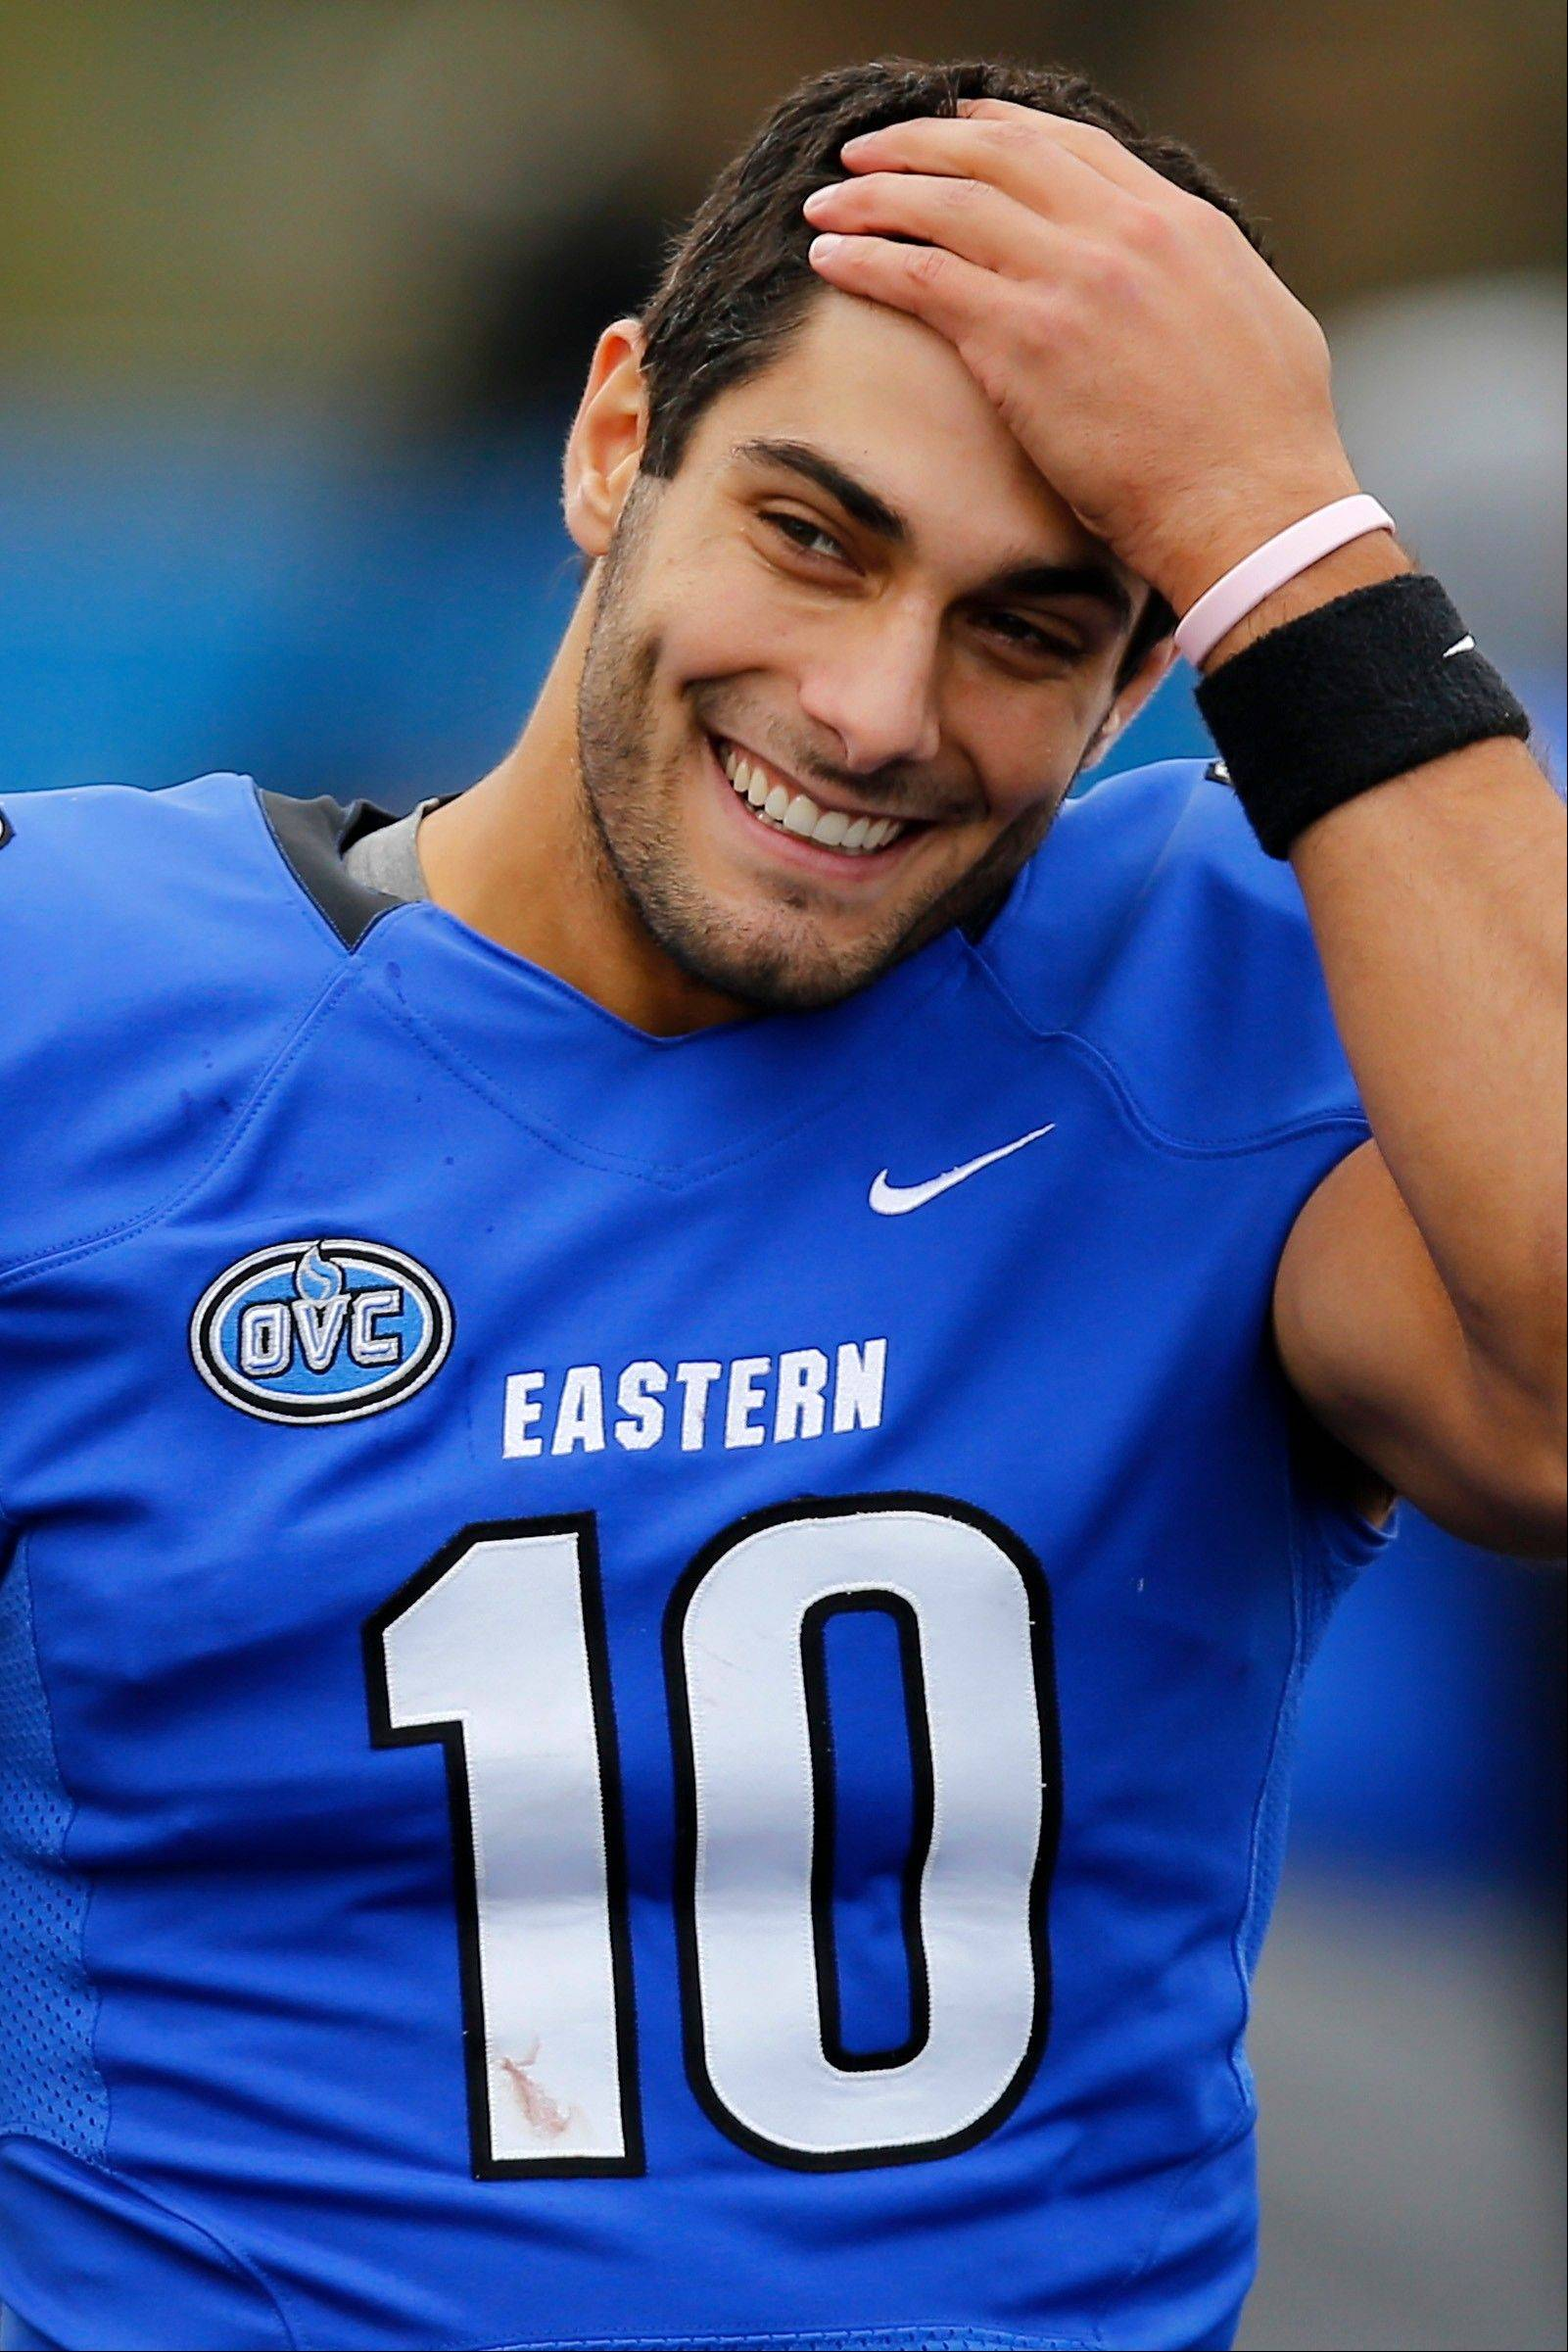 This Nov. 2 file photo shows Eastern Illinois quarterback Jimmy Garoppolo on the sideline during the second half of an NCAA football game against Tennessee Tech at O'Brien Field in Charleston, Ill. Garoppolo, an Arlington Heights native, has been selected to The Associated Press FCS All-America team.